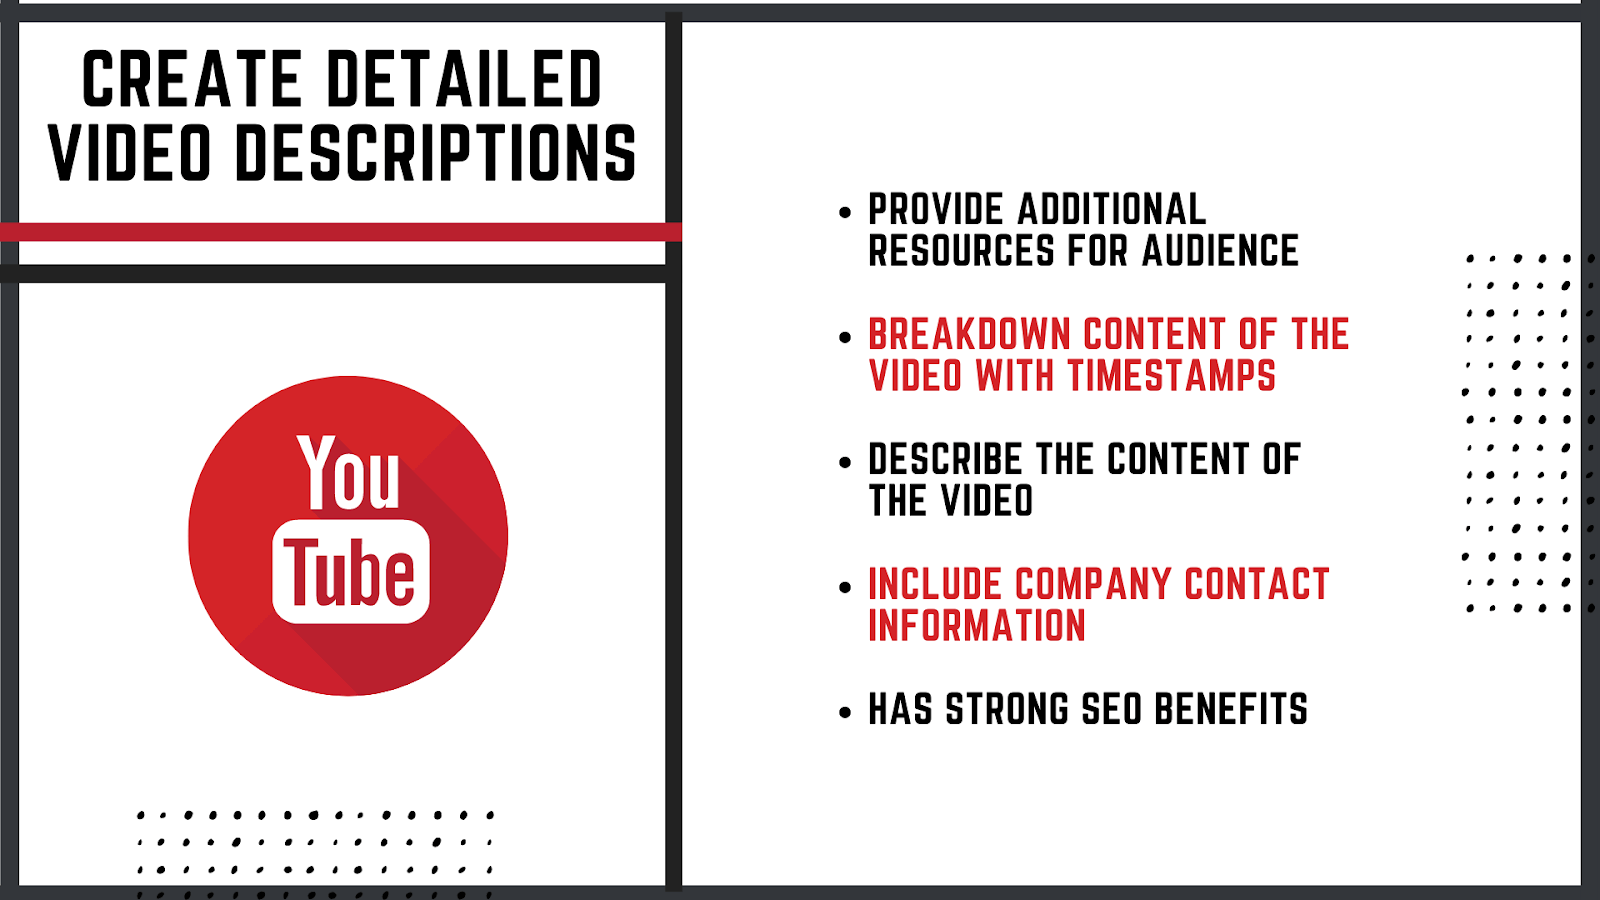 how to create detailed video descriptions for Youtube